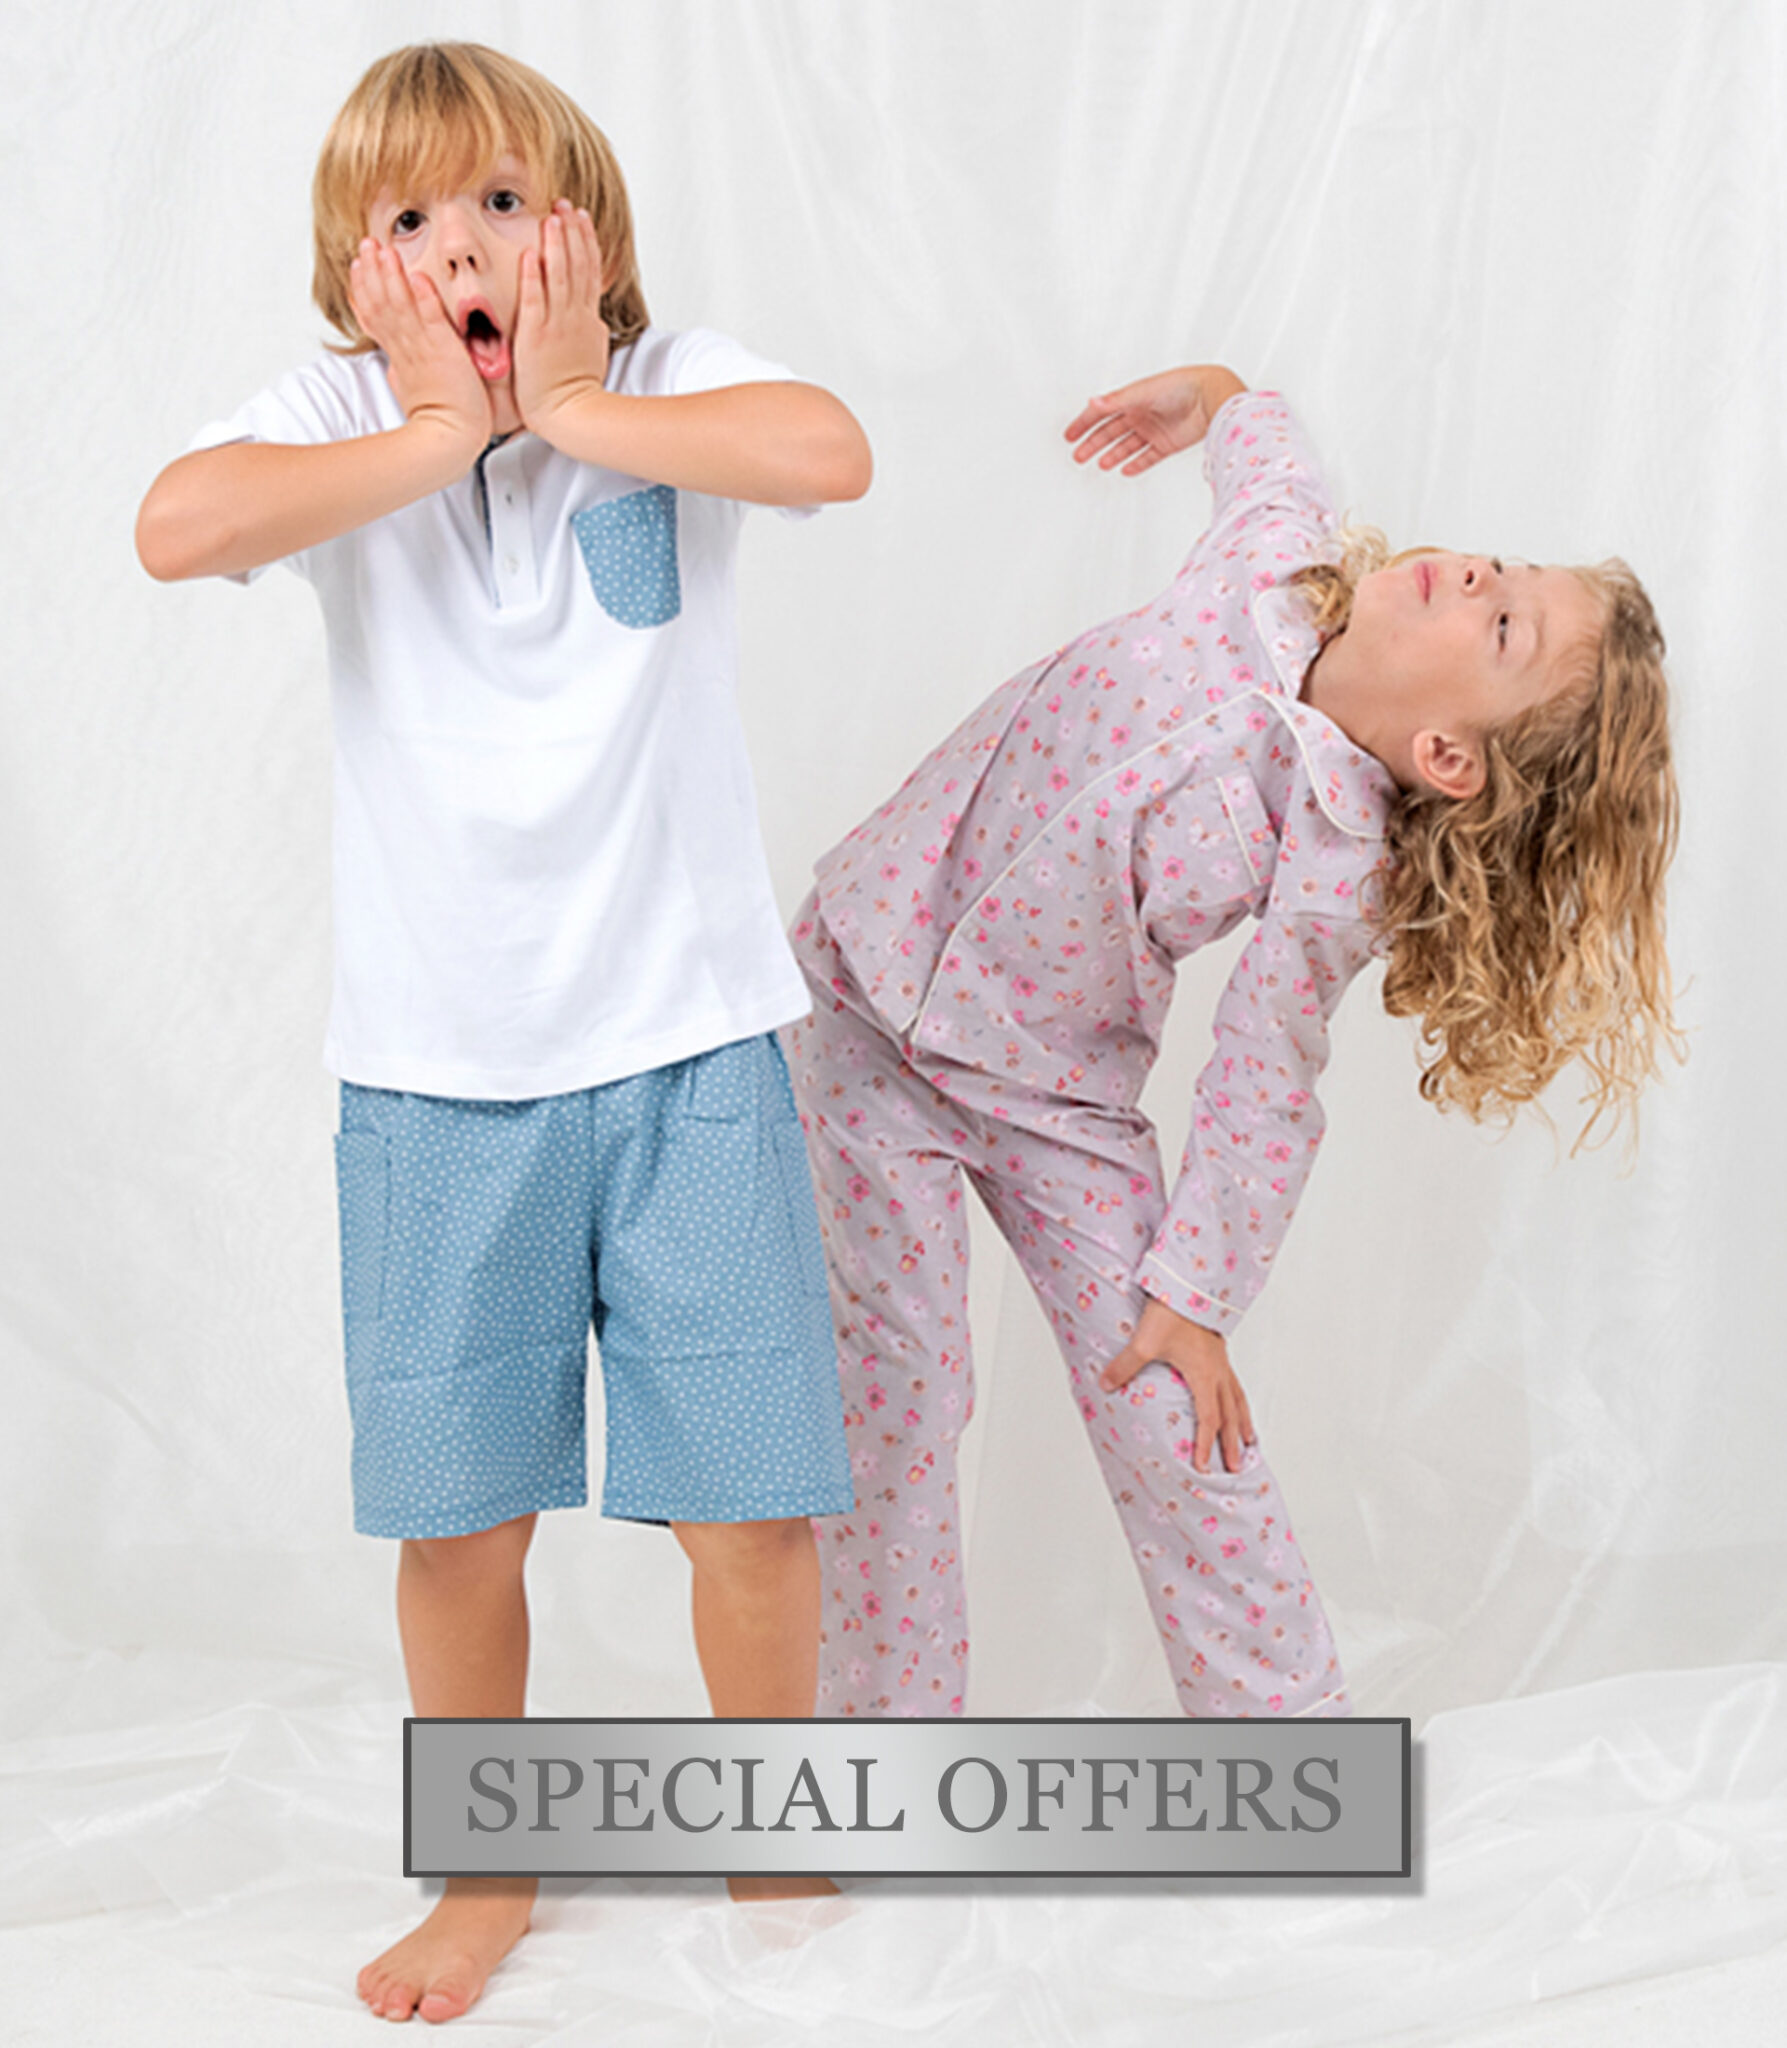 special offers for children